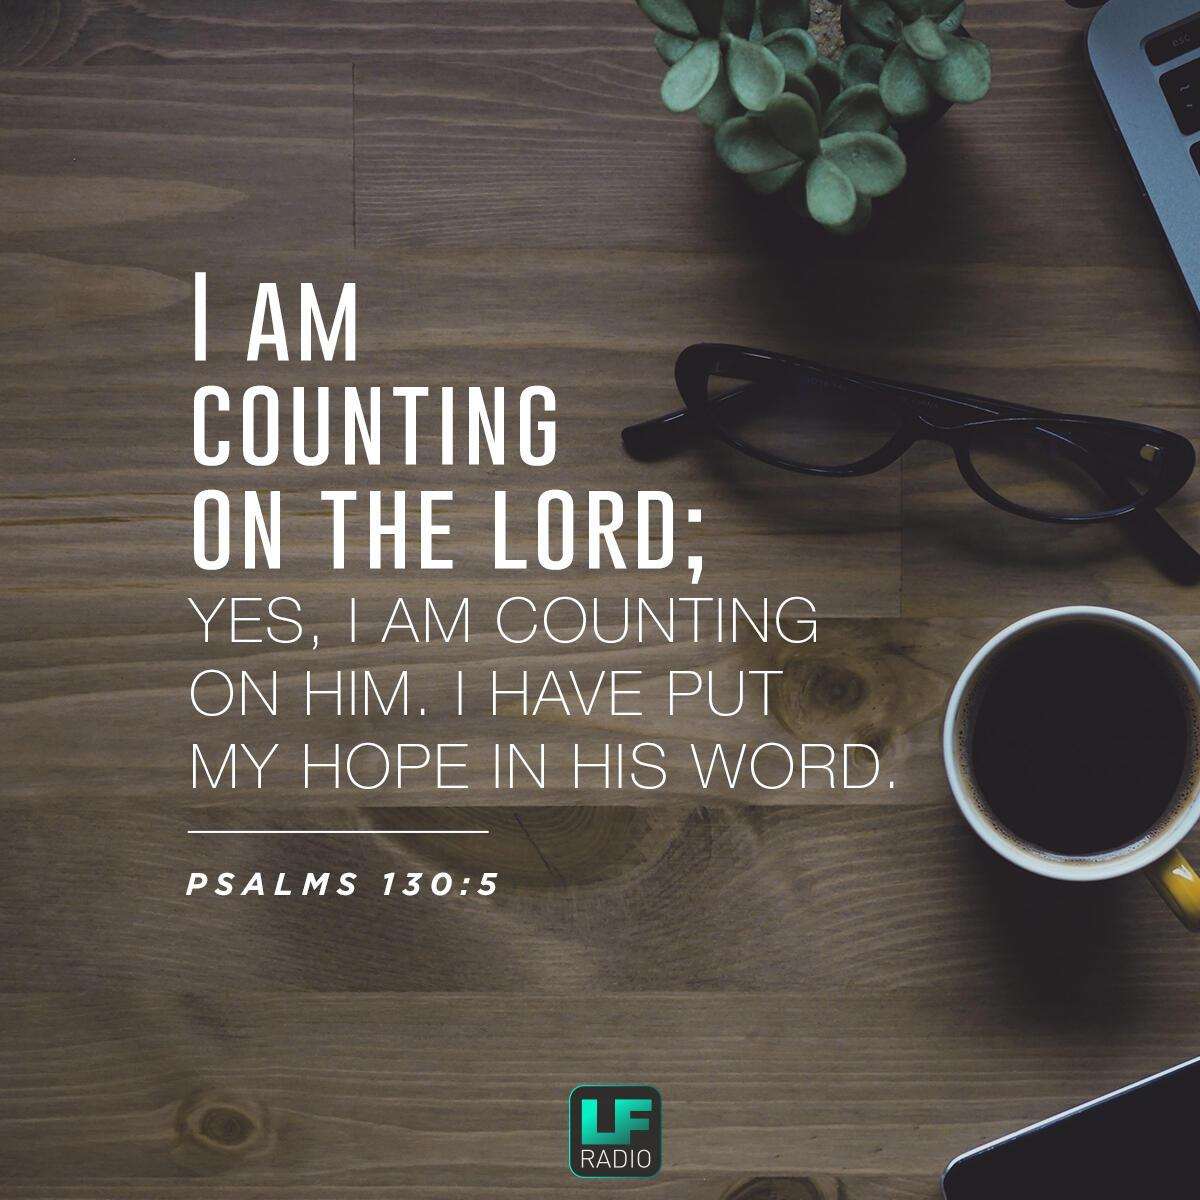 Psalm 130:5 - Verse of the Day